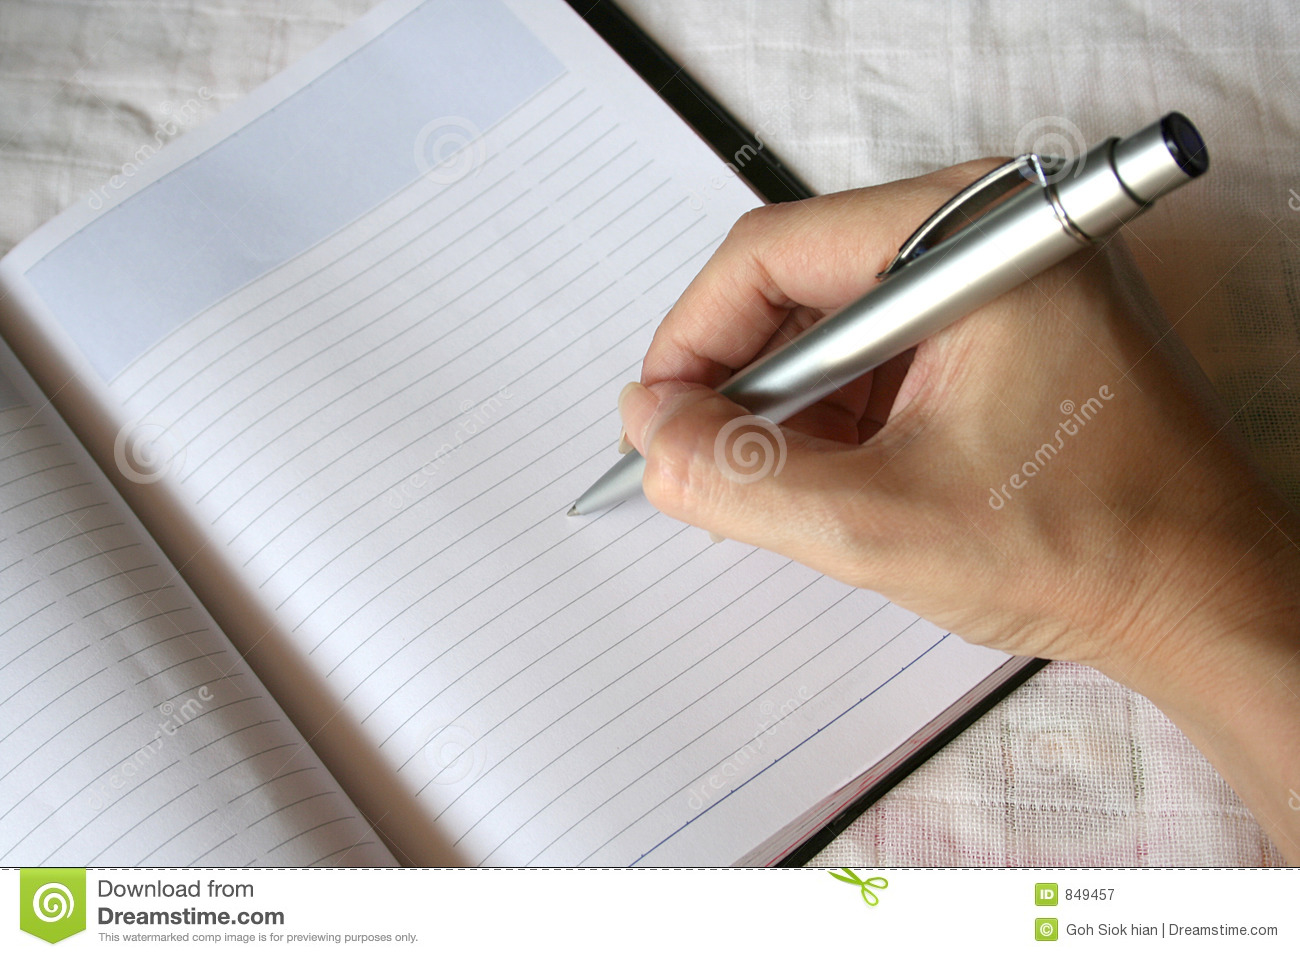 size of writing paper derived from watermark